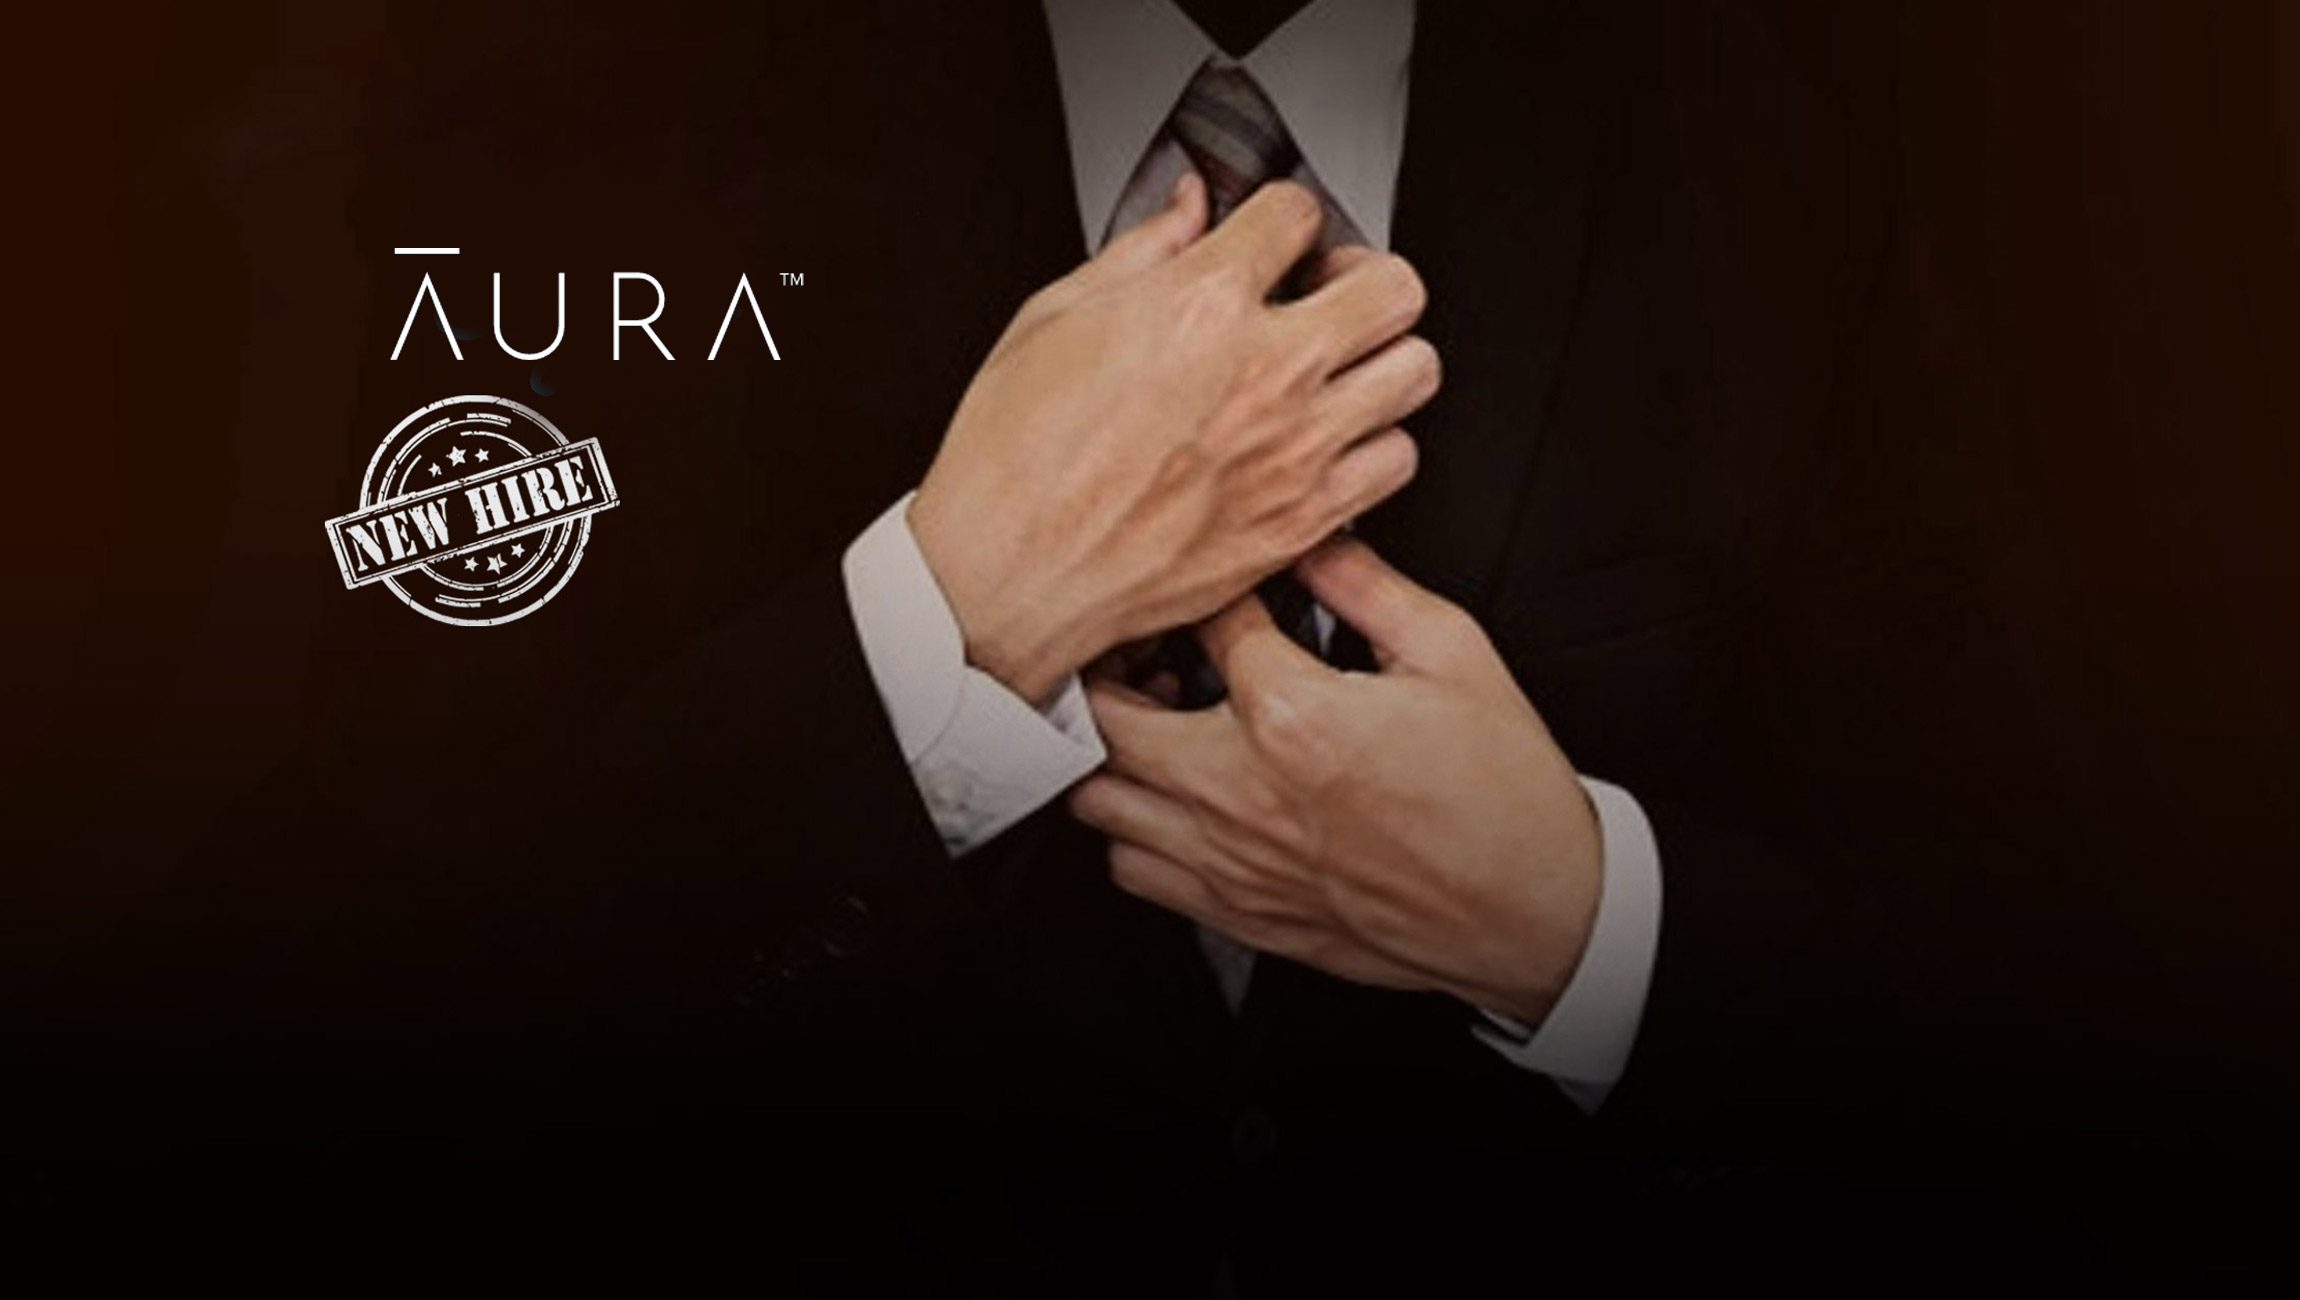 Aura Announces Expansion of Leadership Team with CMO and CRO Hires